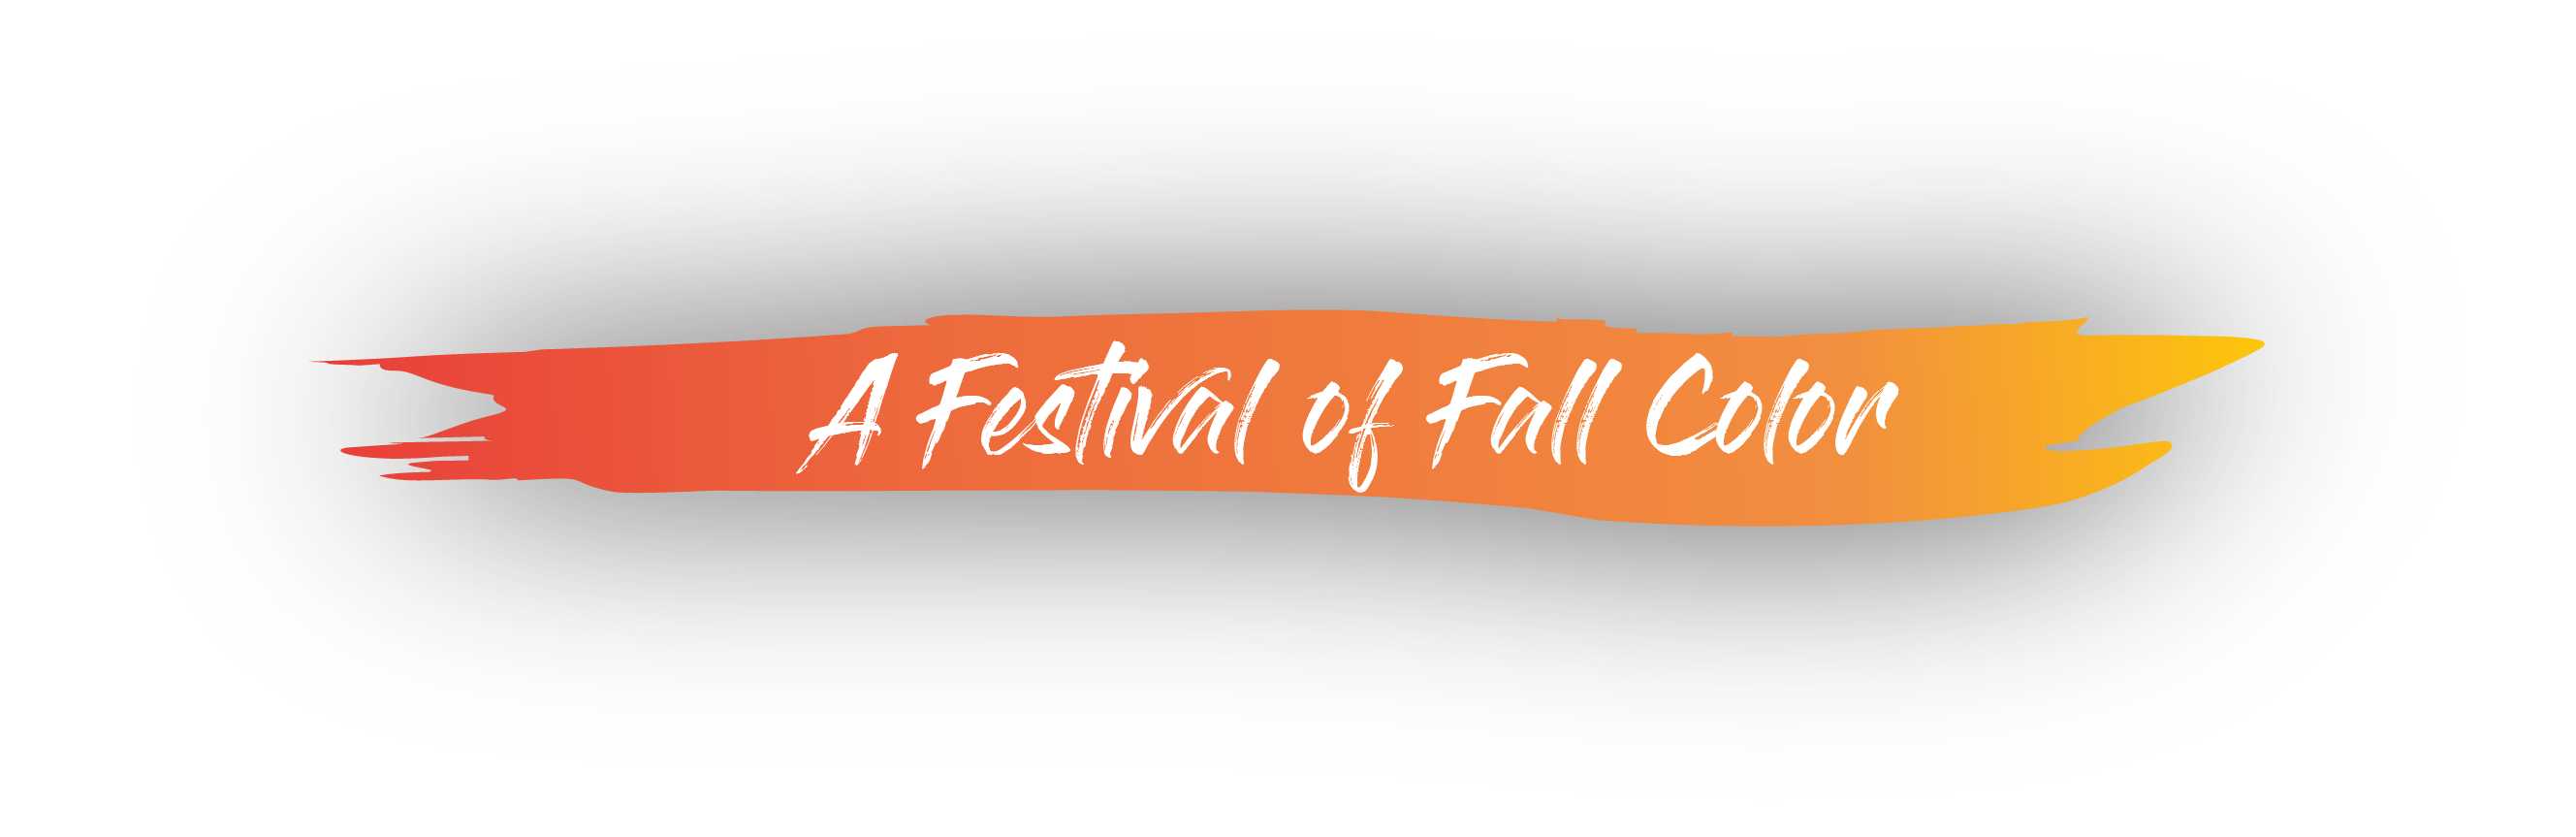 A festival of fall color